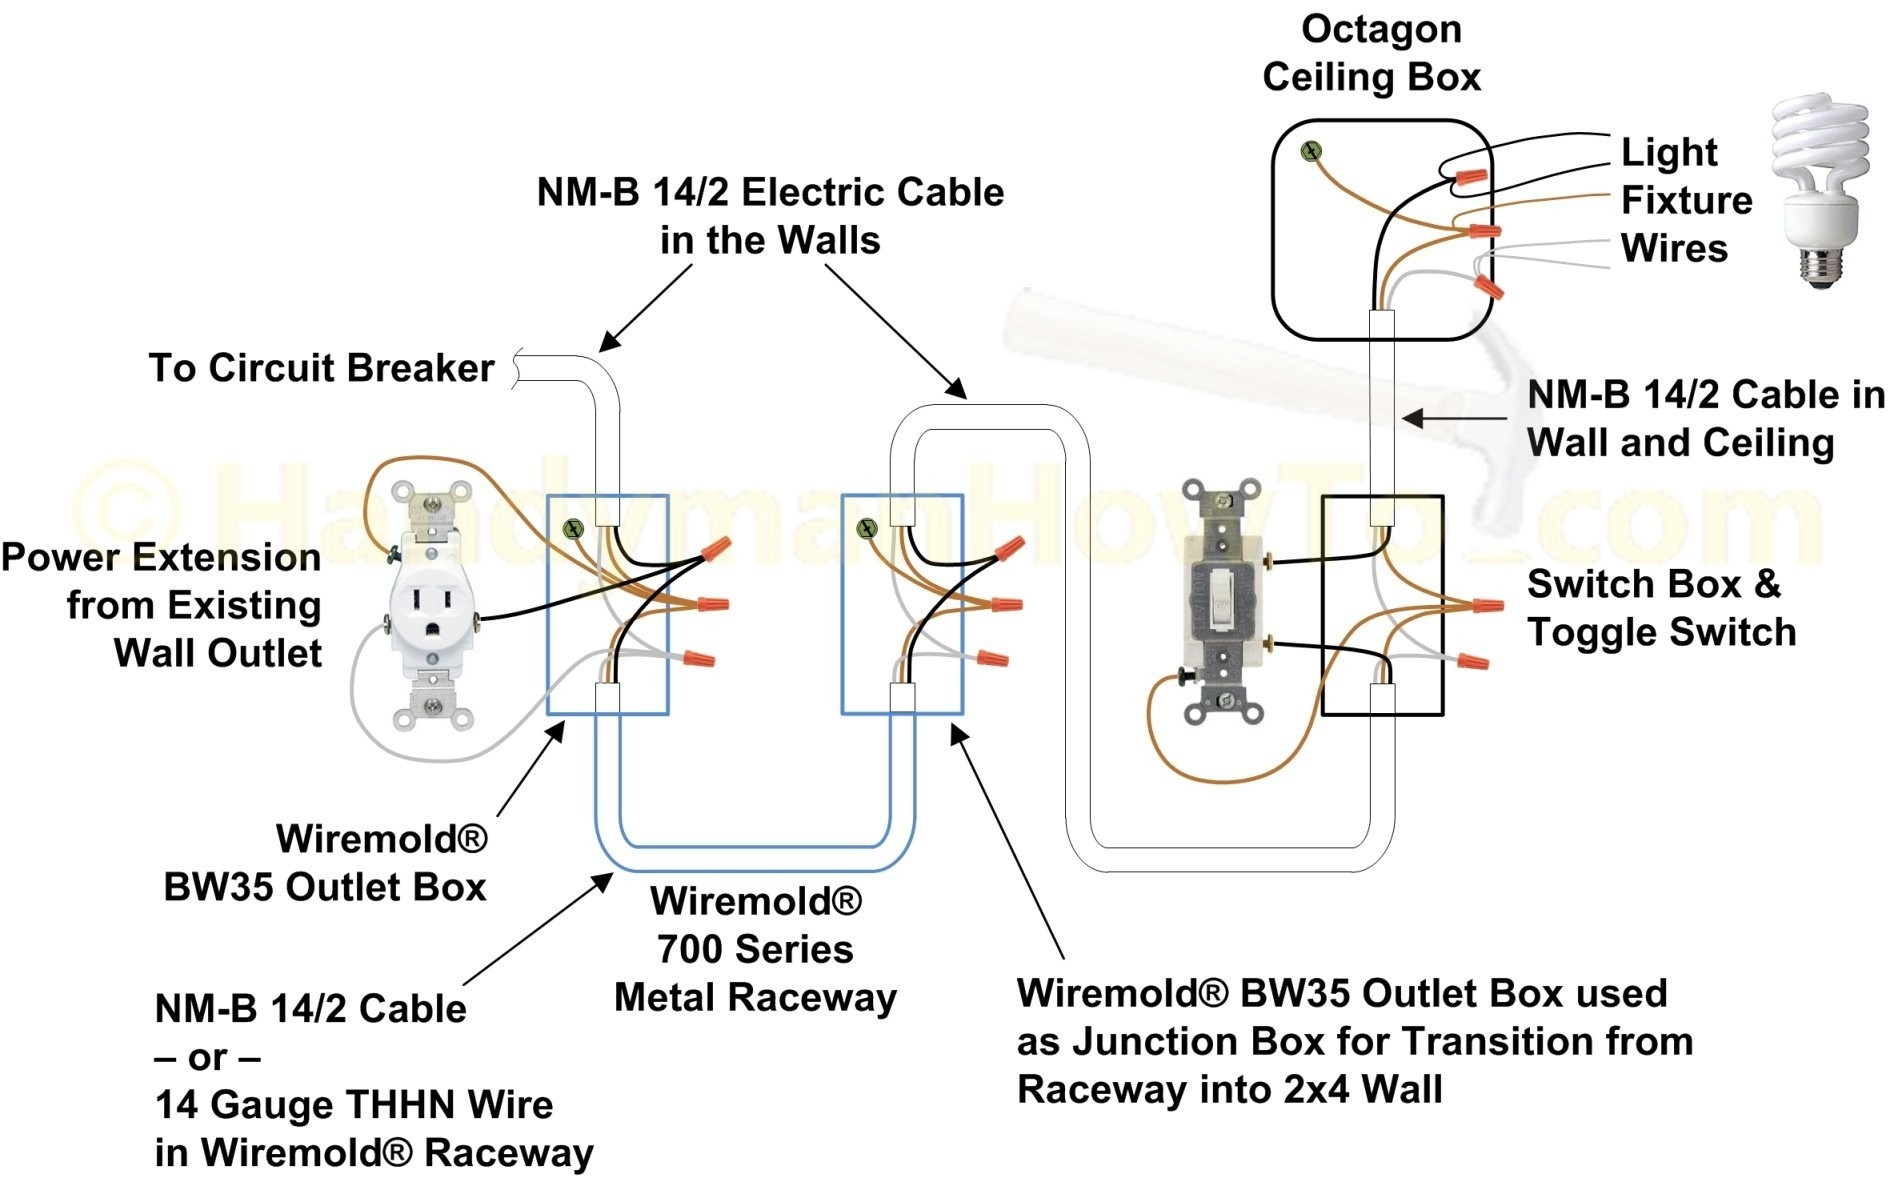 Fileschuko socket for din railjpg yamaha wire harness diagram wire schuko socket wiring diagram collection under dash fuse diagram for light socket wiring diagram awesome plug receptacle wiring collection of light socket asfbconference2016 Choice Image